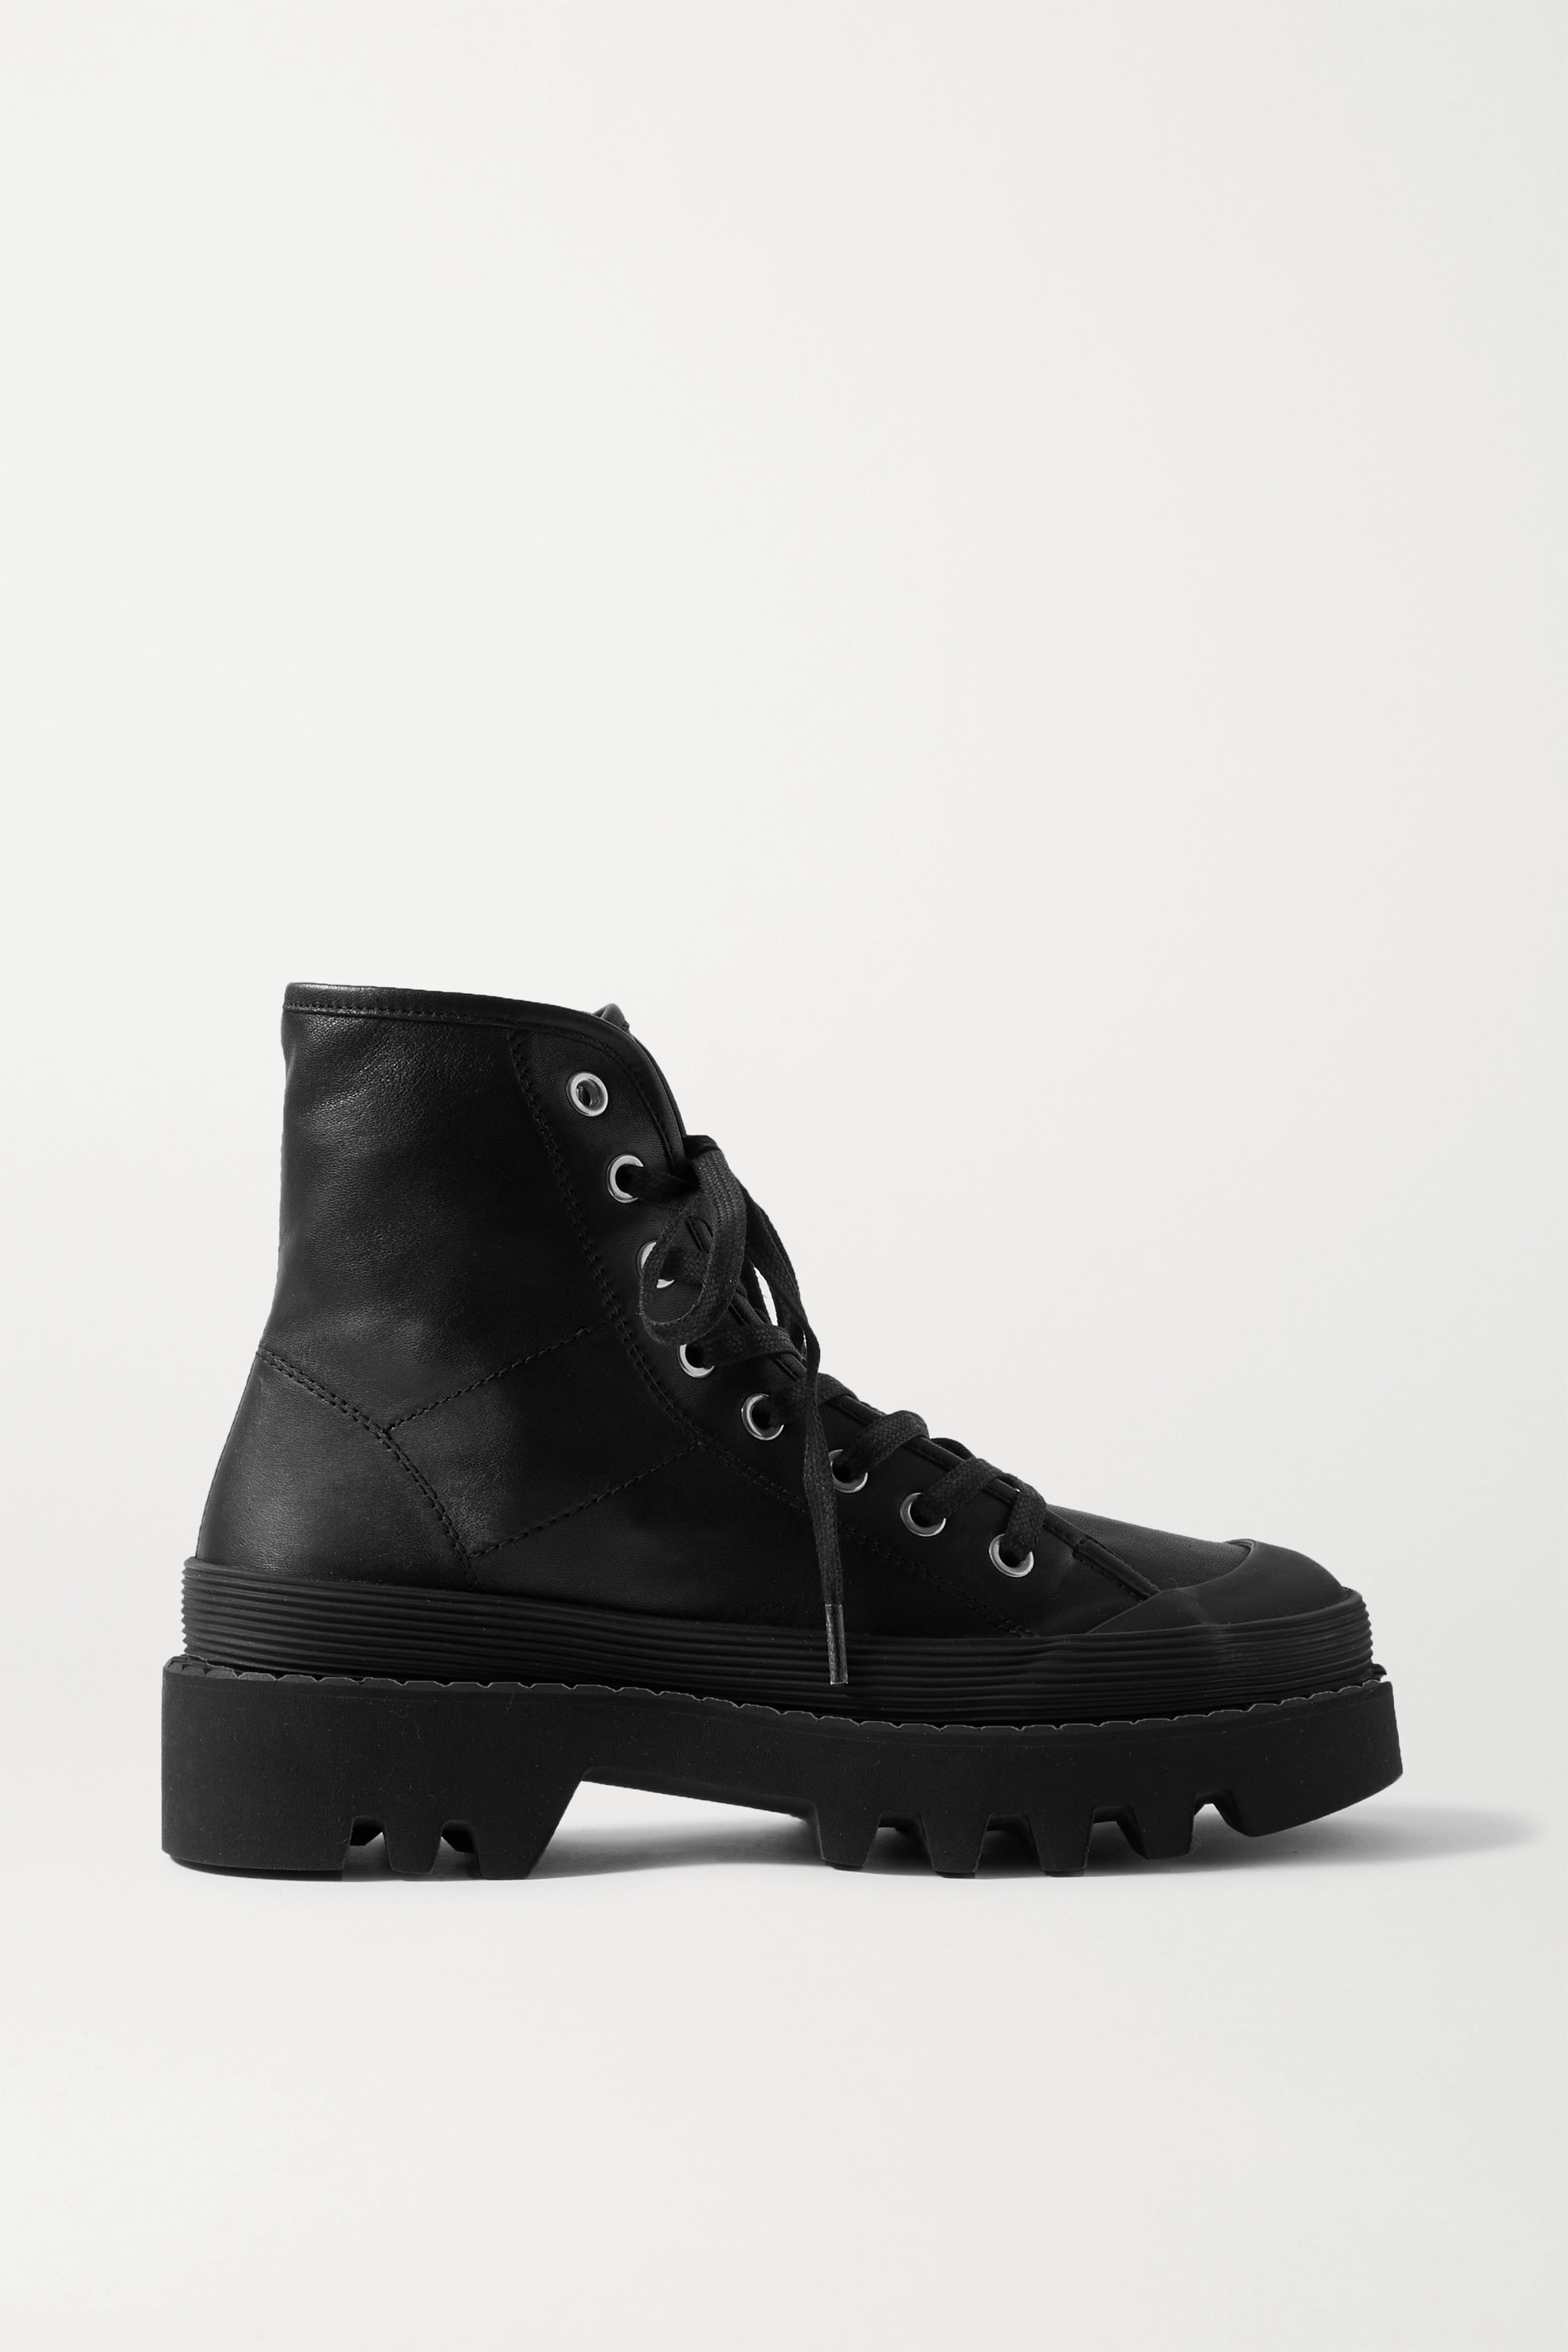 Proenza Schouler Rubber-trimmed leather ankle boots